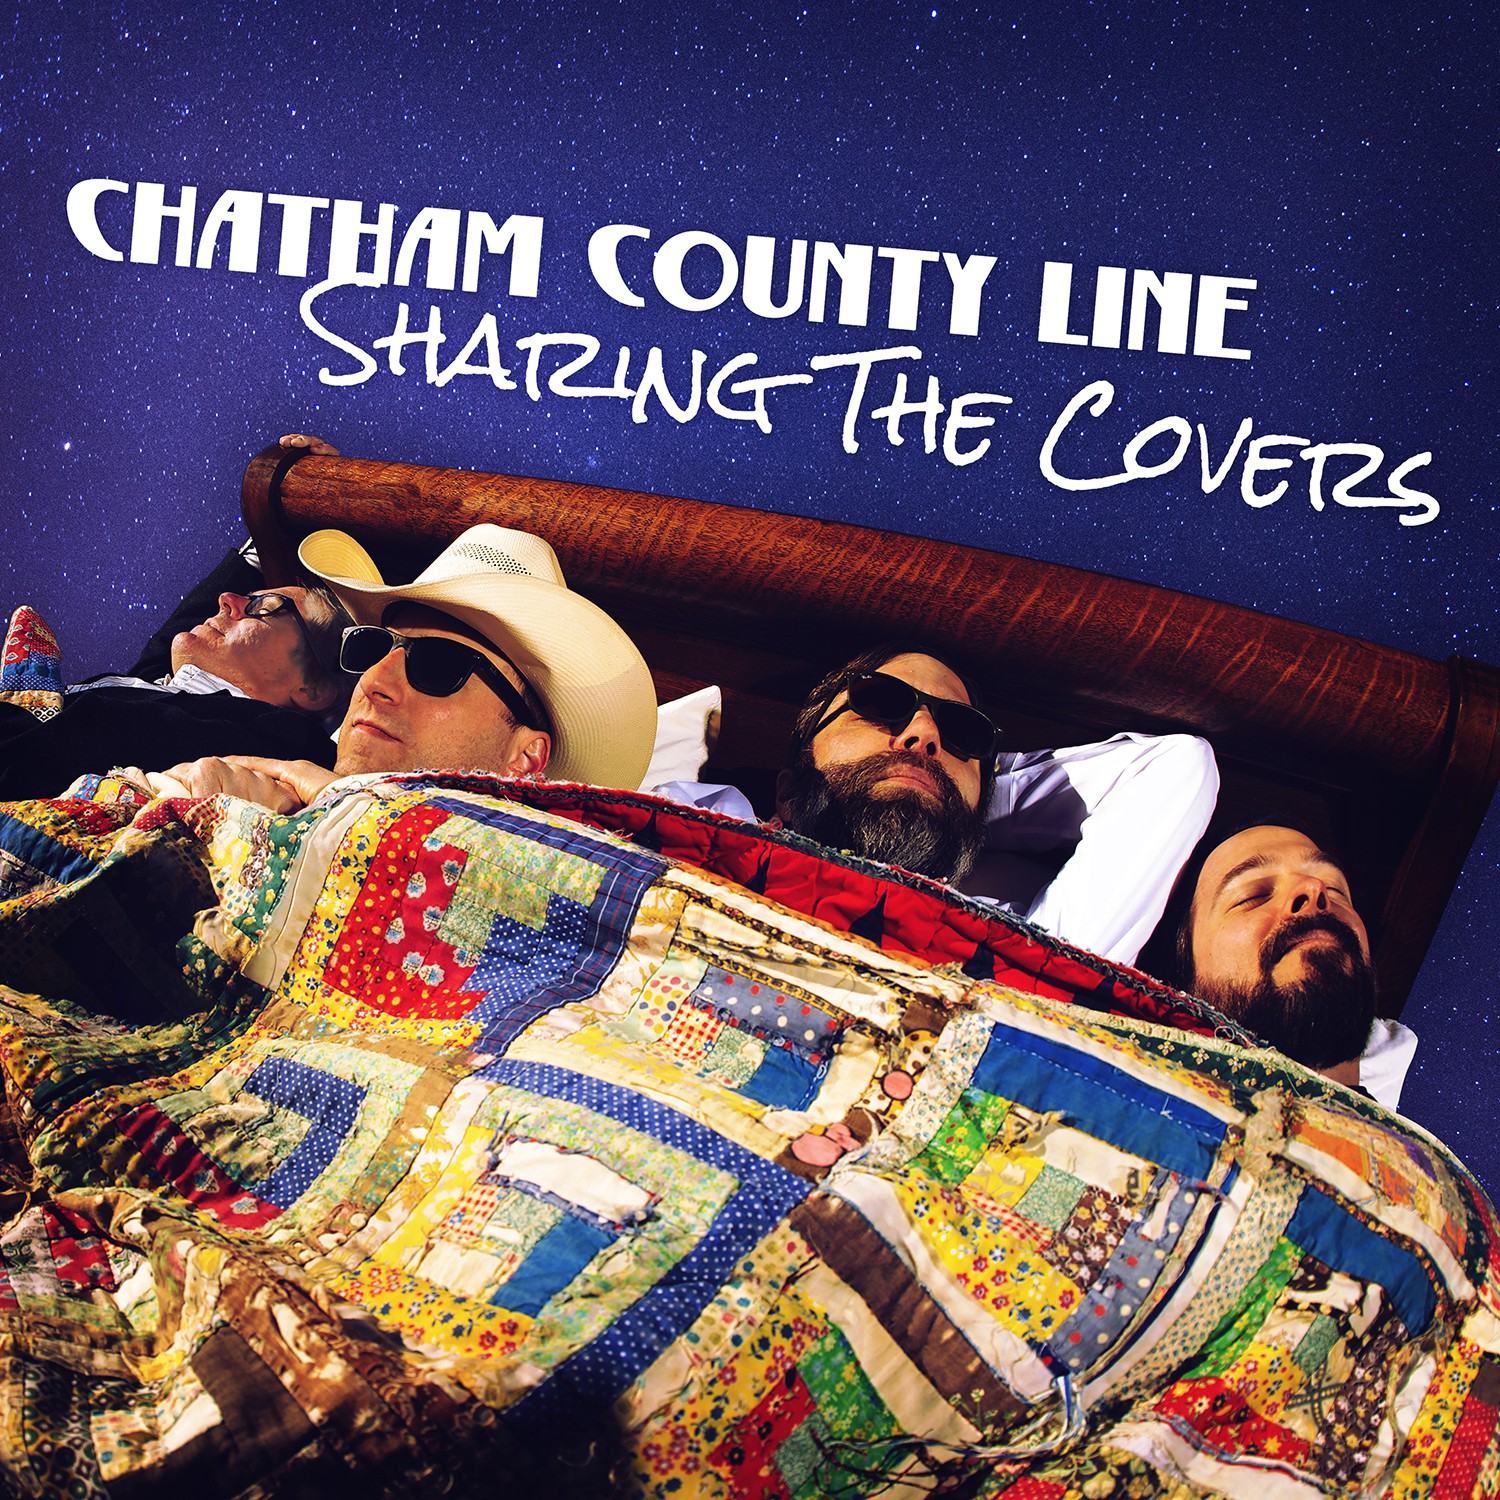 Chatham County Line - Sharing The Covers  [BUNDLE]